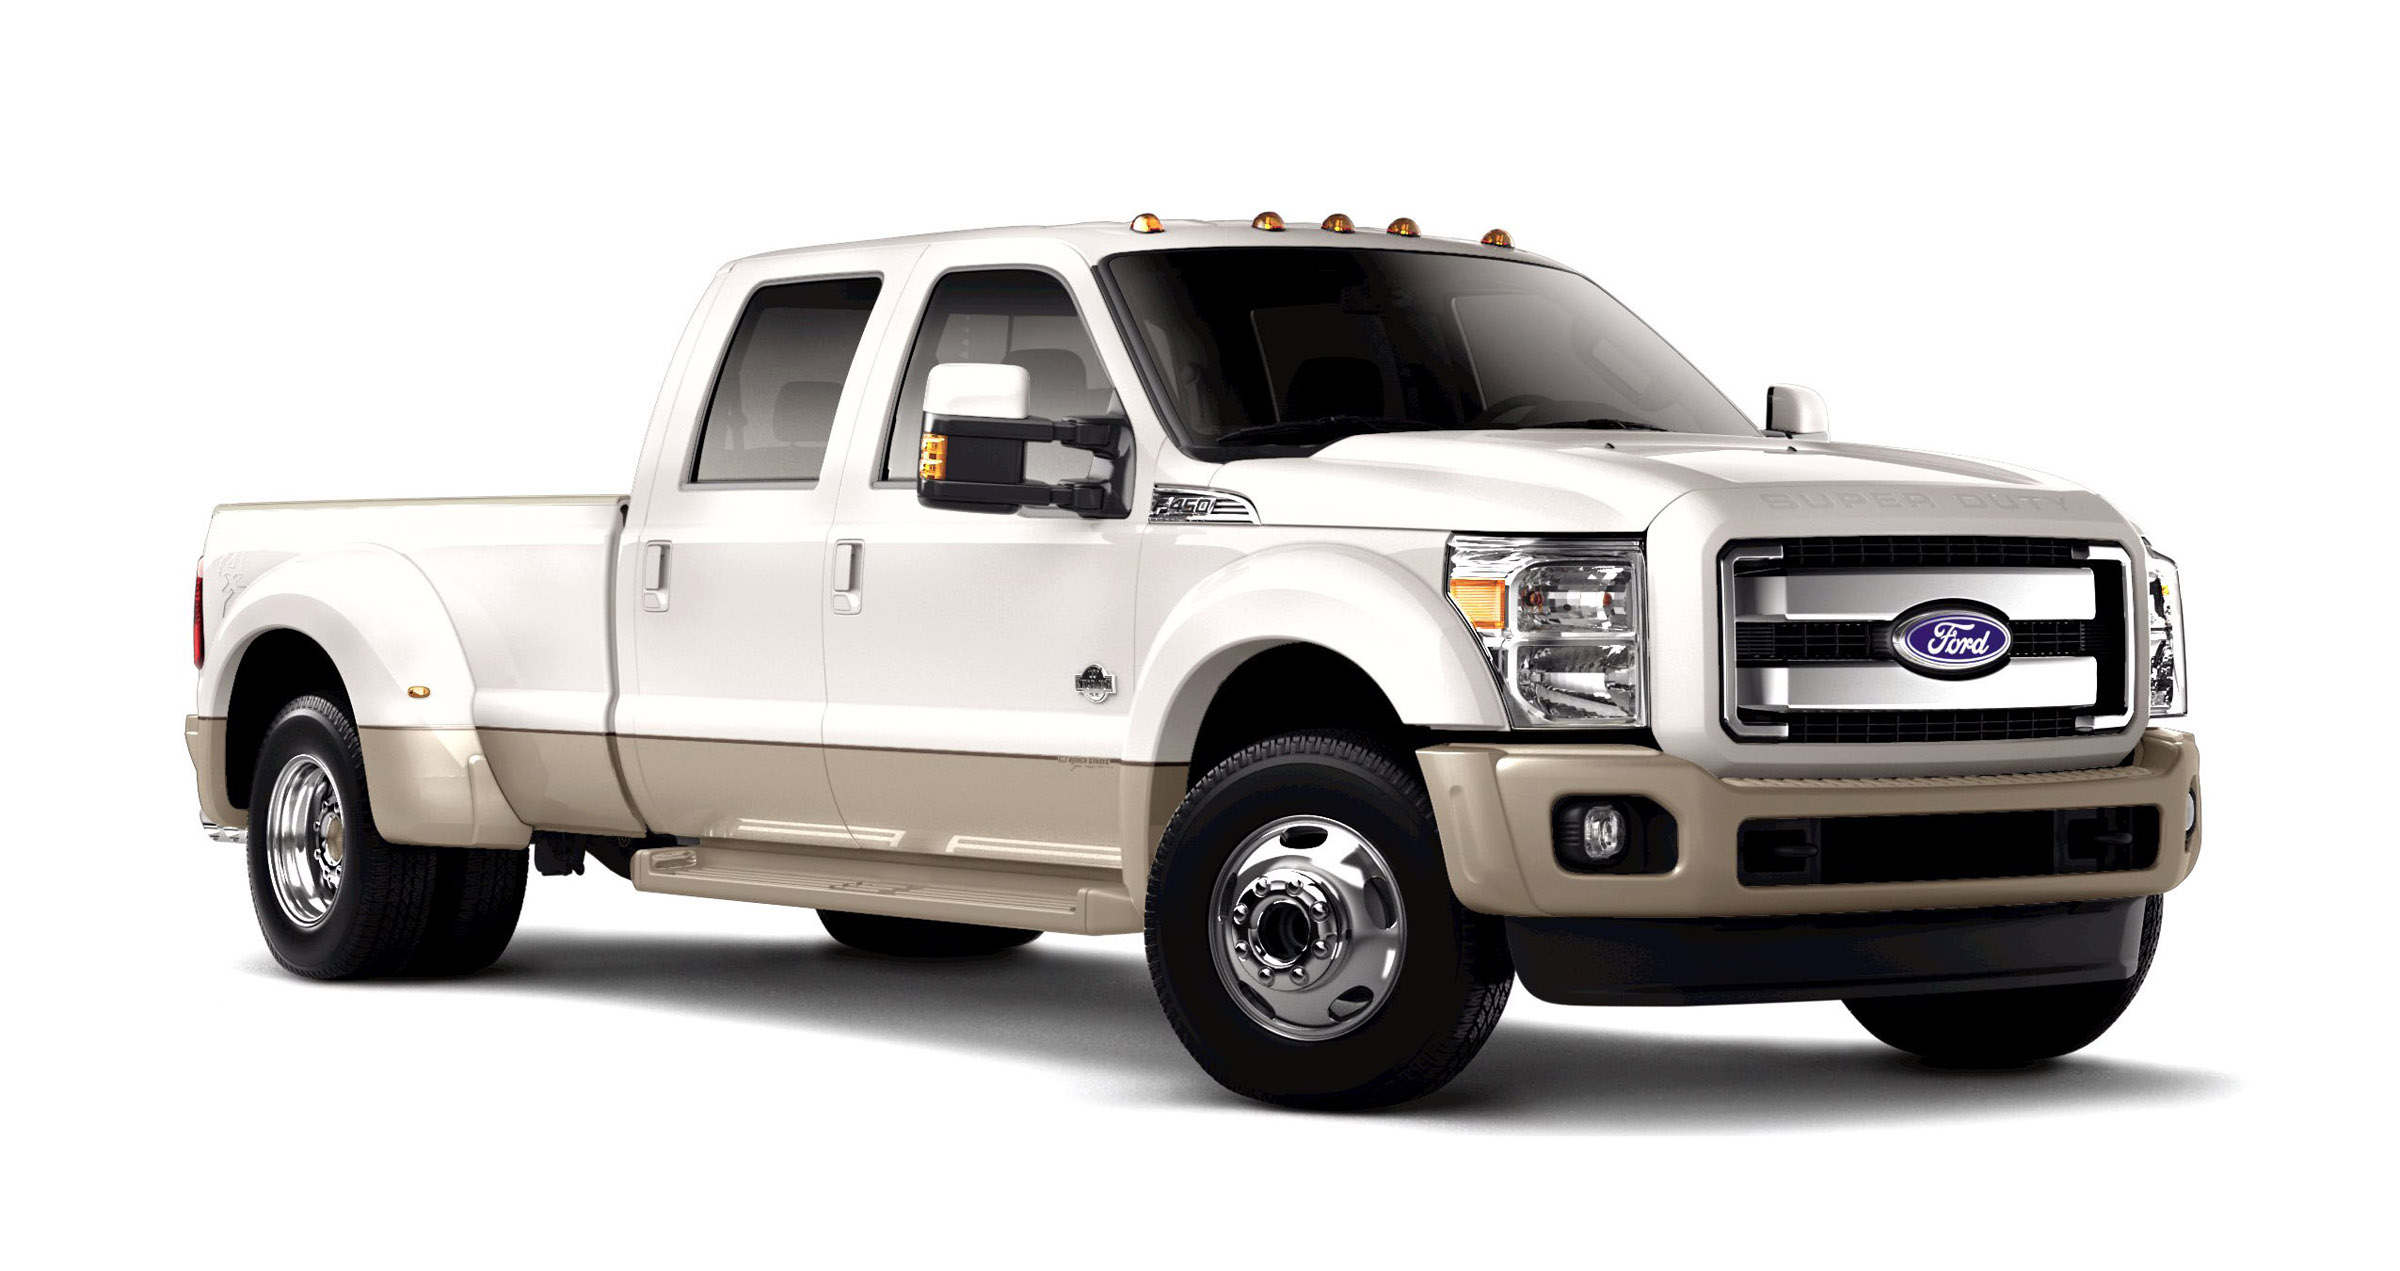 2012 Ford F-450 #4